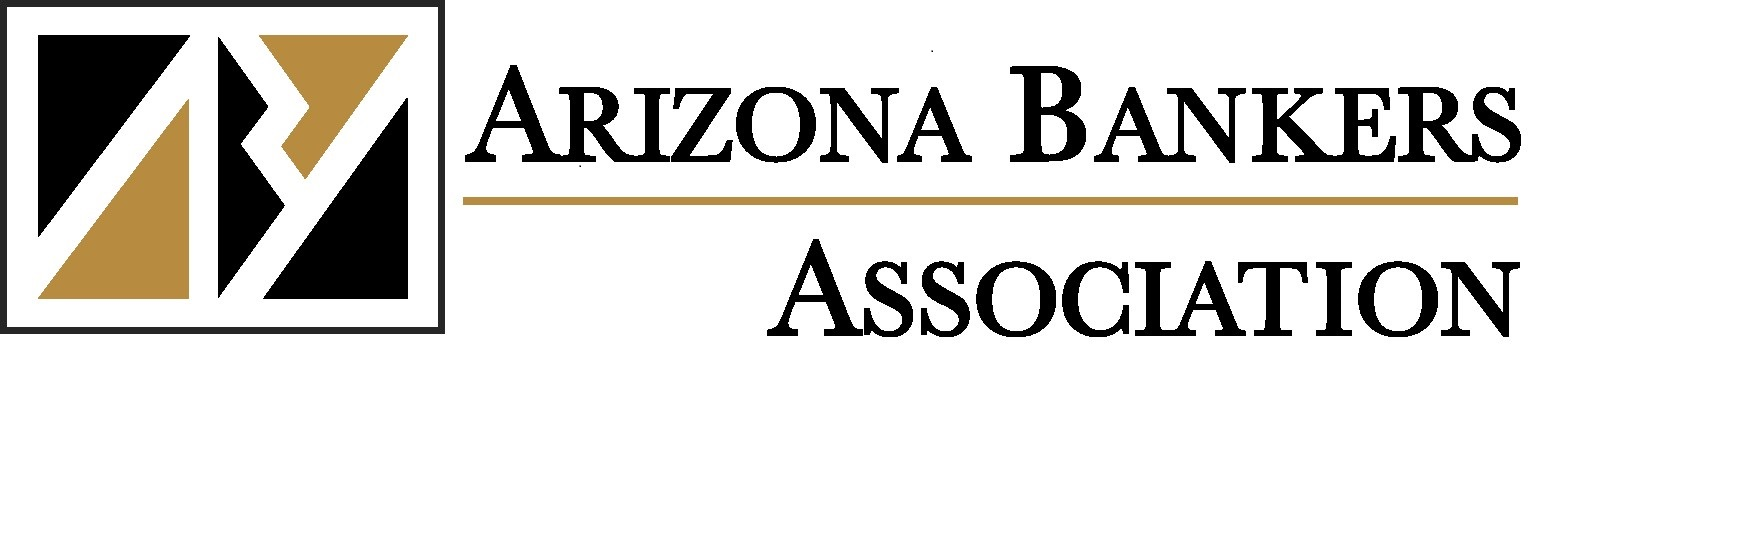 Arizona Bankers Association